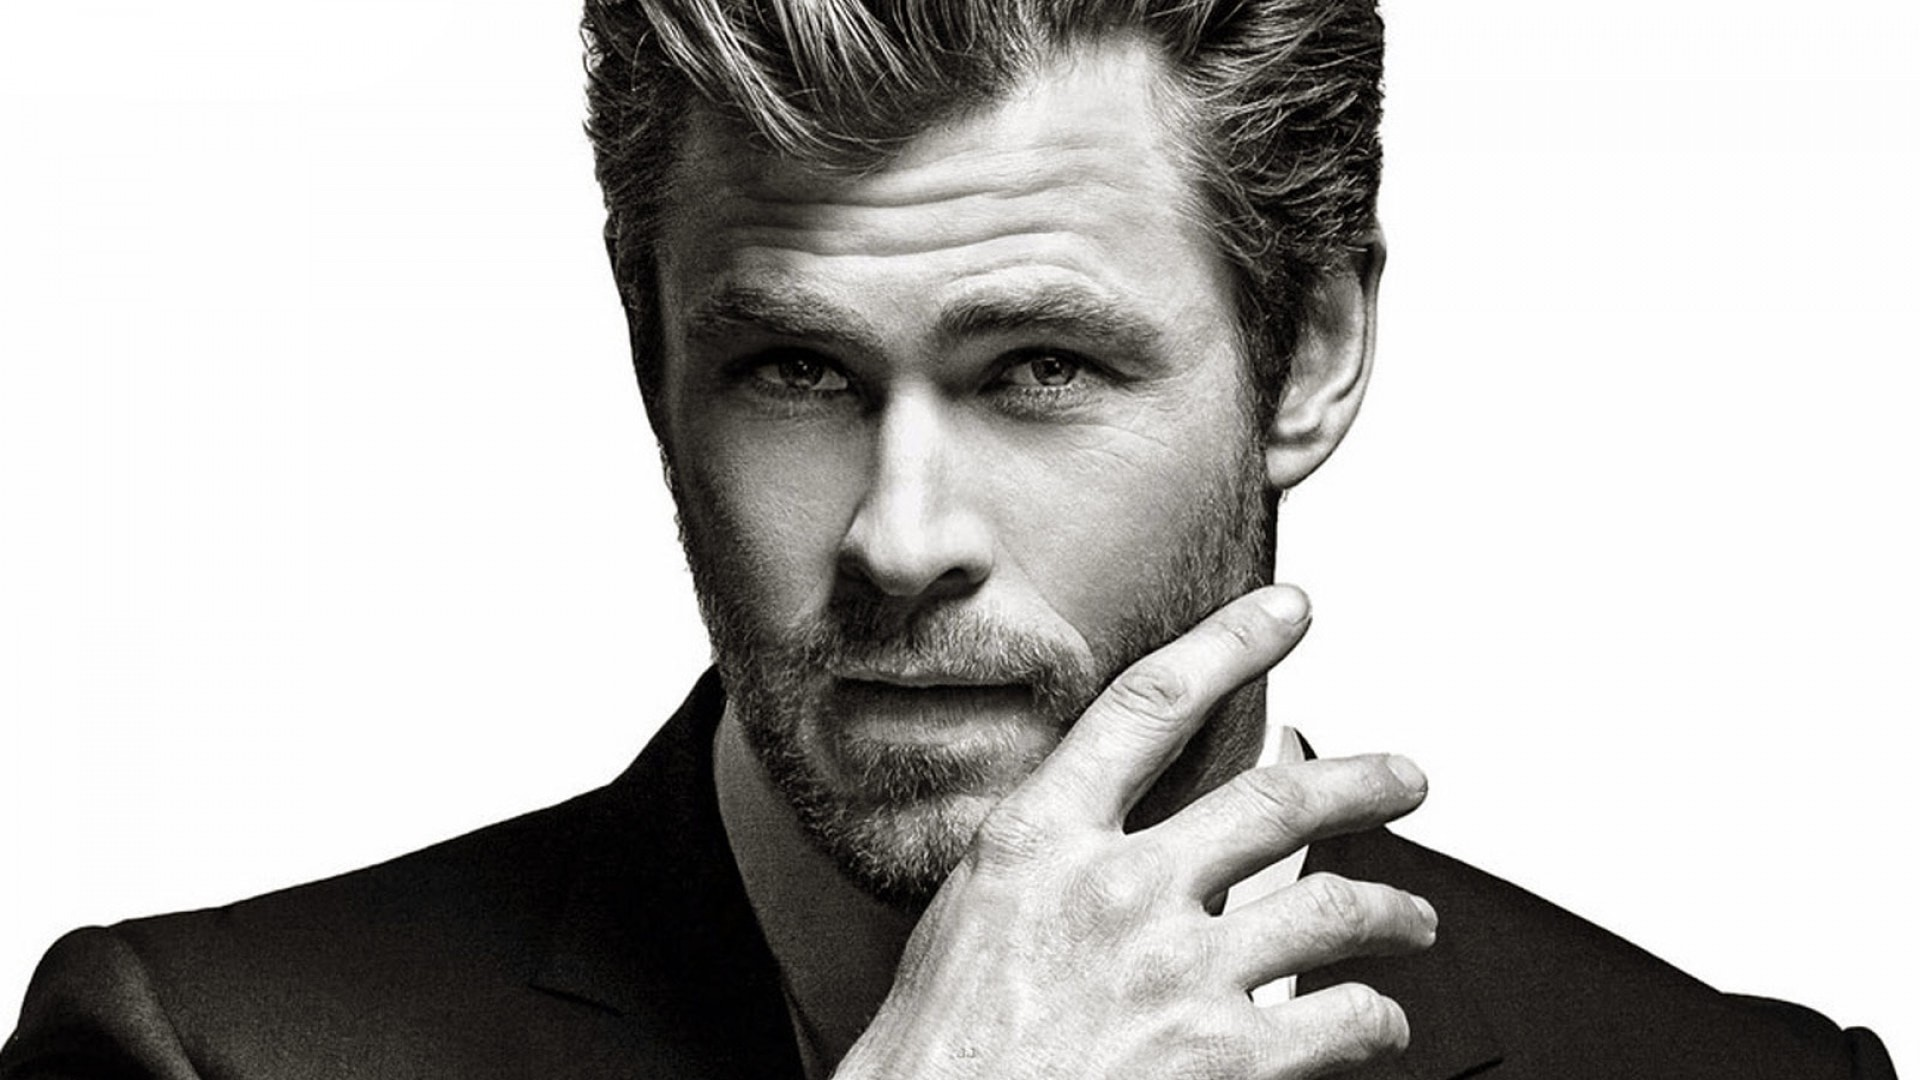 Chris Hemsworth Wallpapers ①